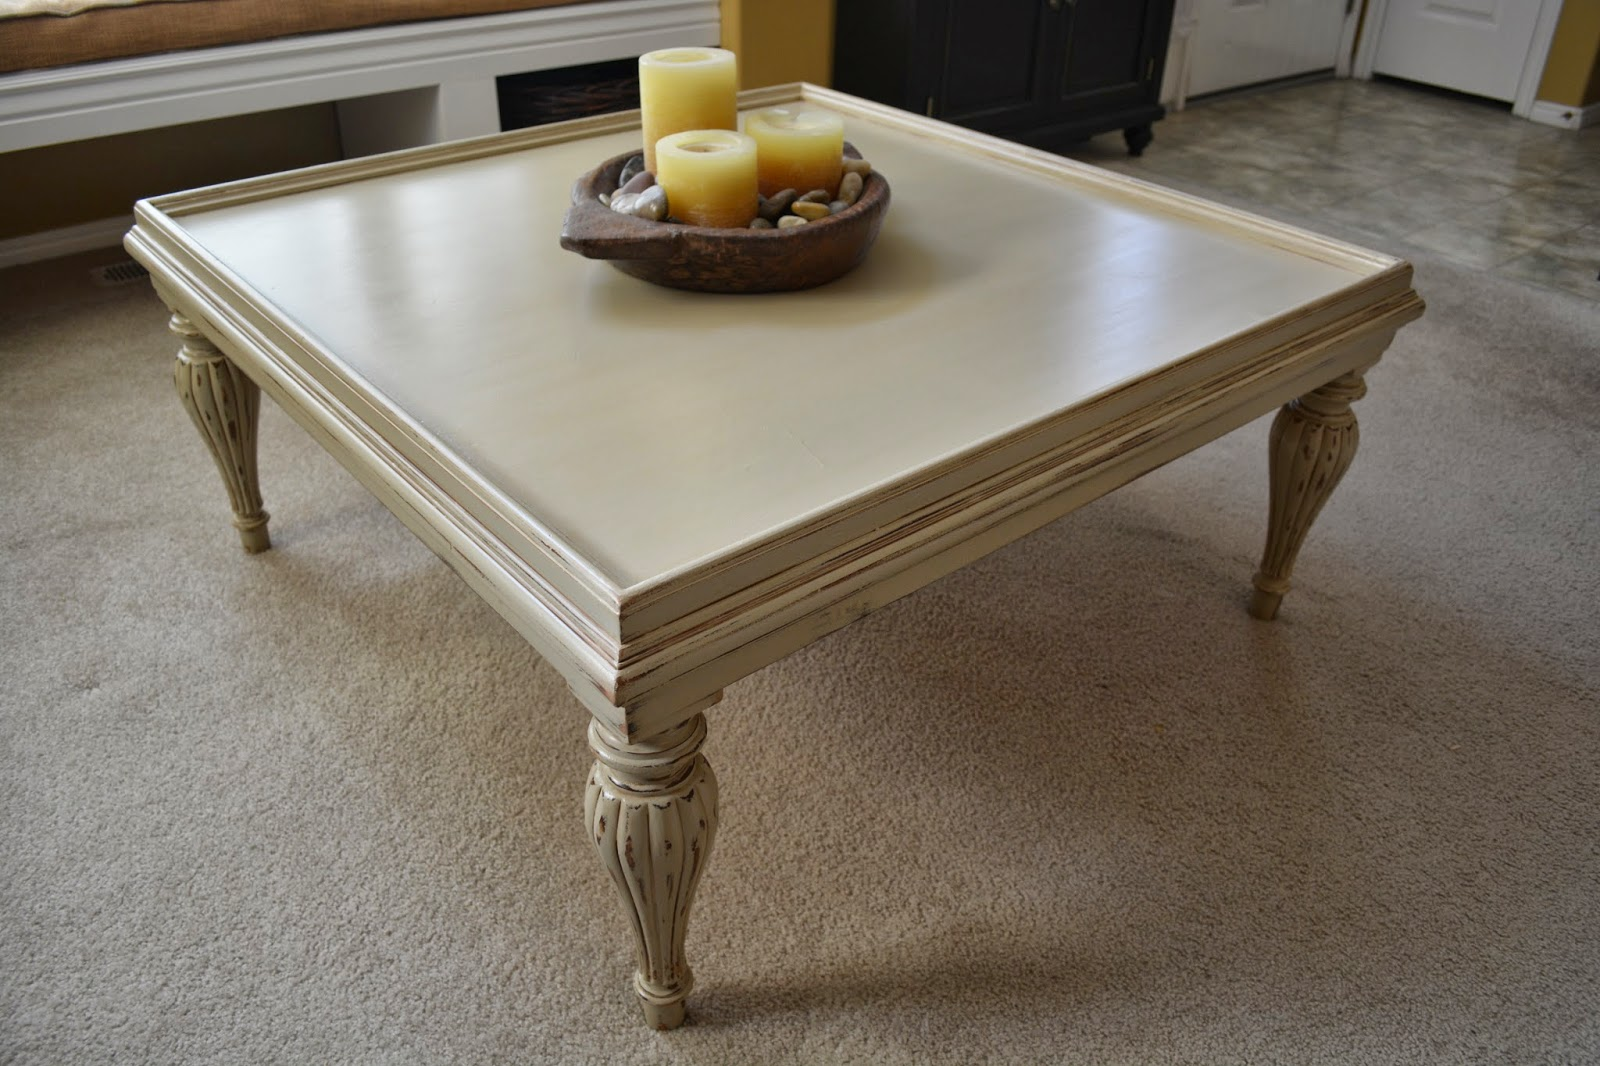 B's Refurnishings: Large, Square Coffee Table